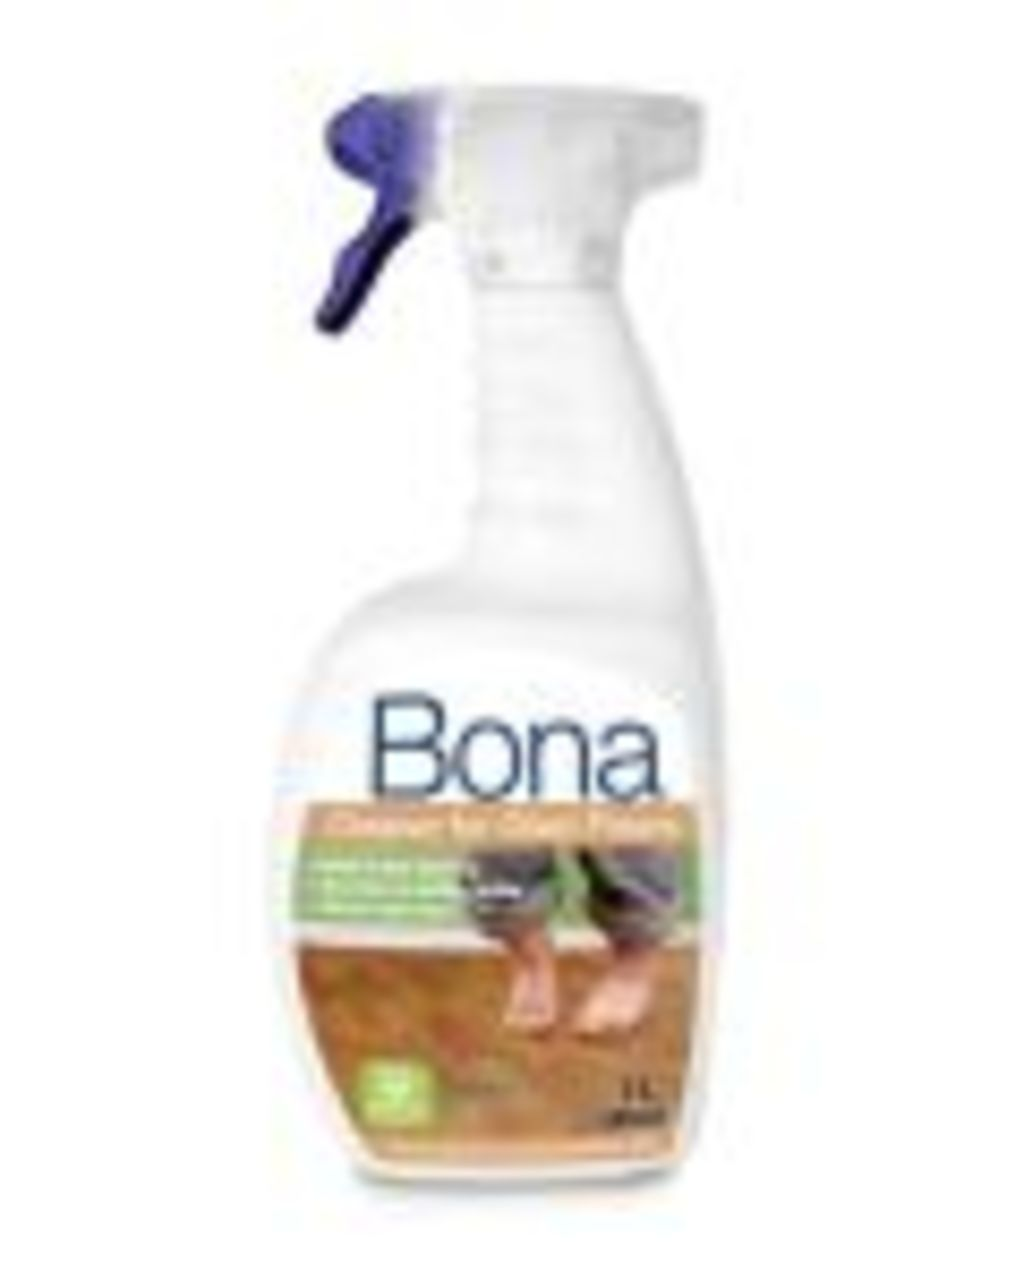 Bona Cleaner Spray for Oiled Floors